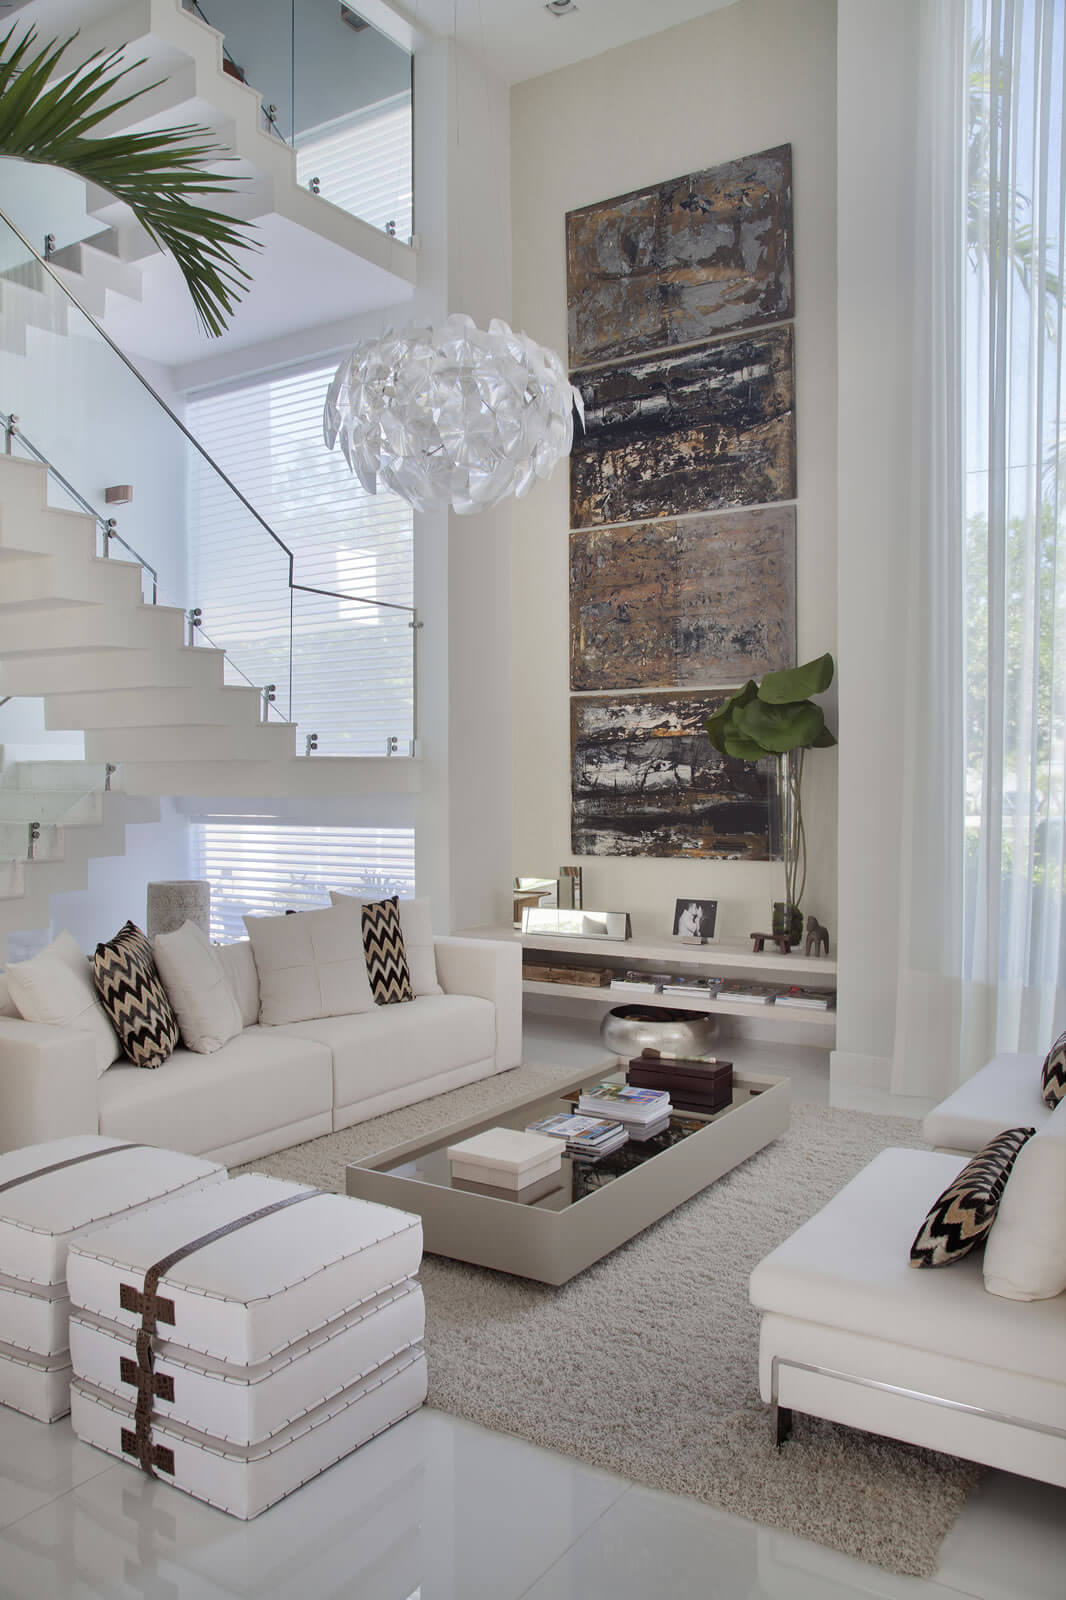 26 Best Modern Living Room Decorating Ideas and Designs for 2021